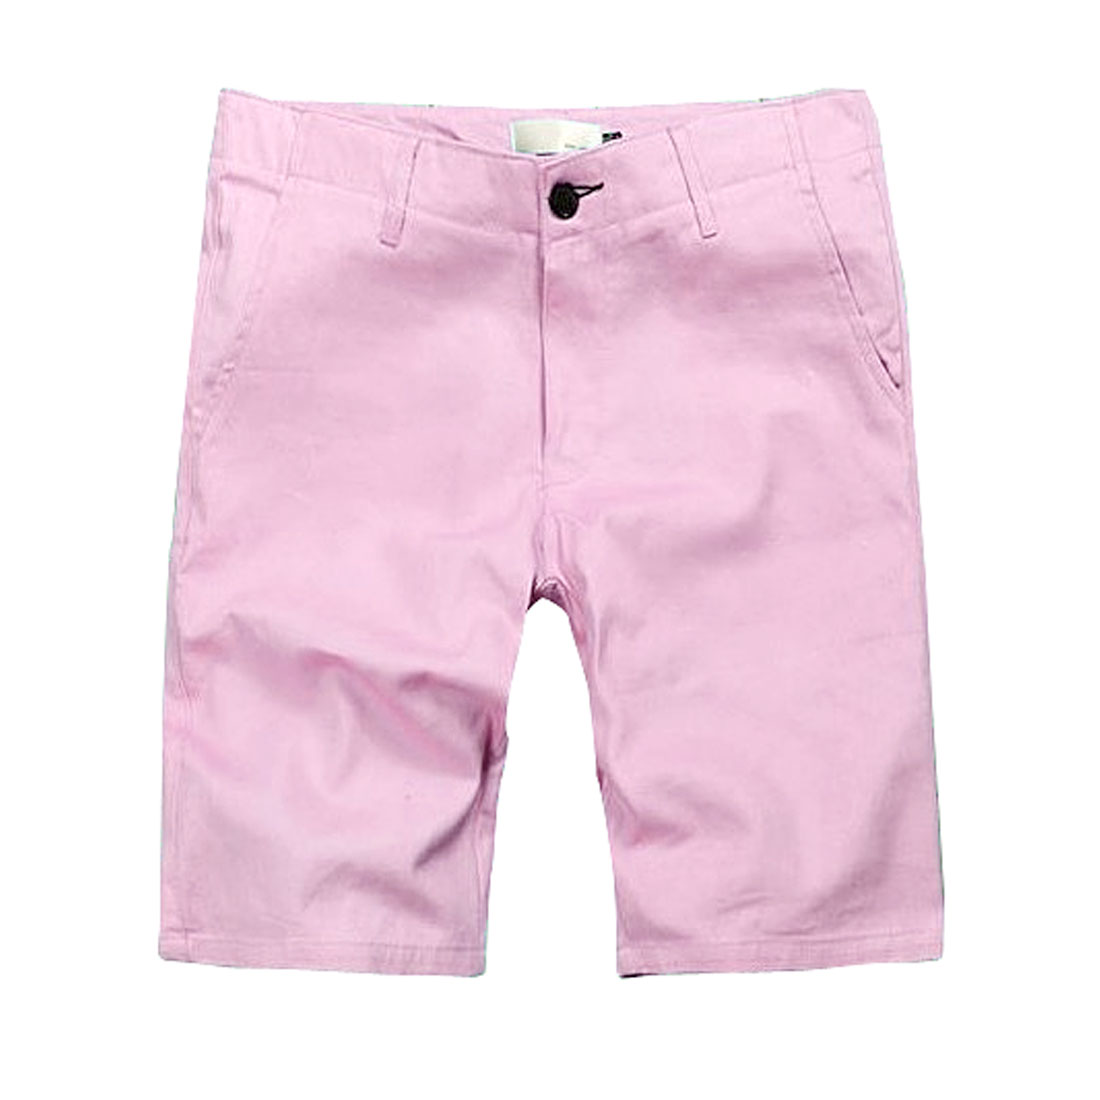 Man Candy Pink Hip Patch Pockets Button Closure Knee Length Pants W32